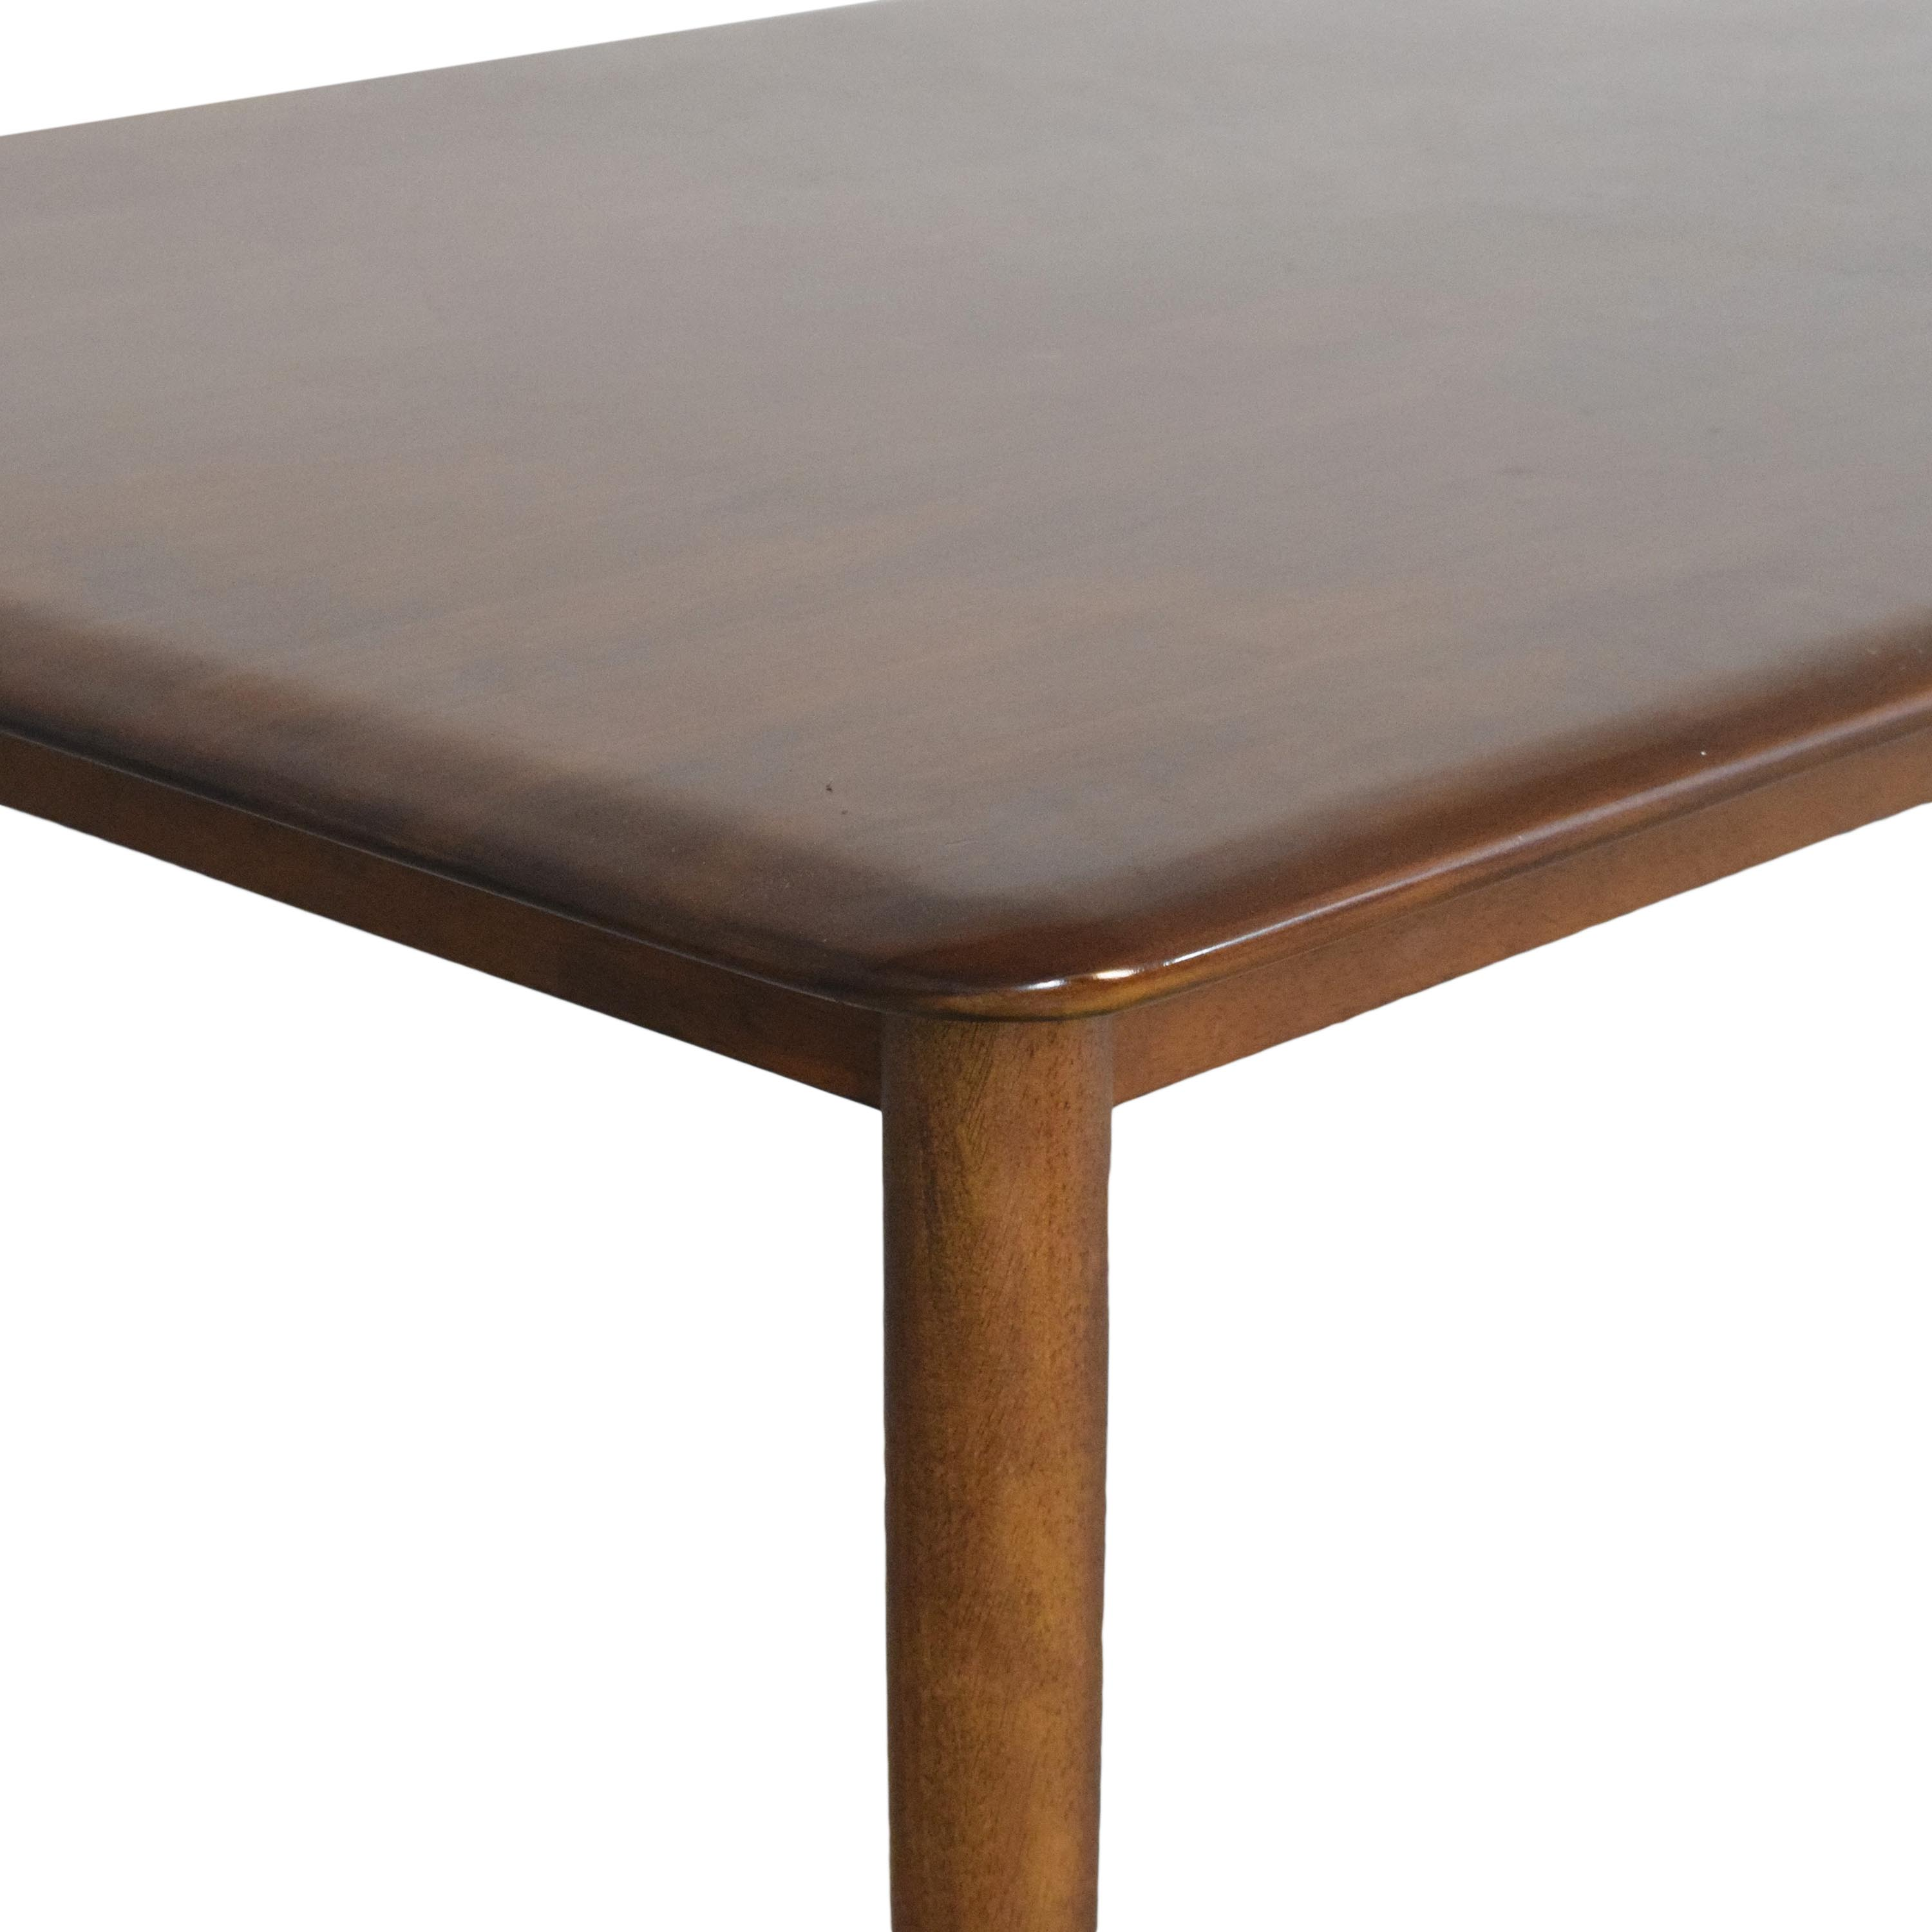 West Elm West Elm Lena Mid Century Dining Table nyc